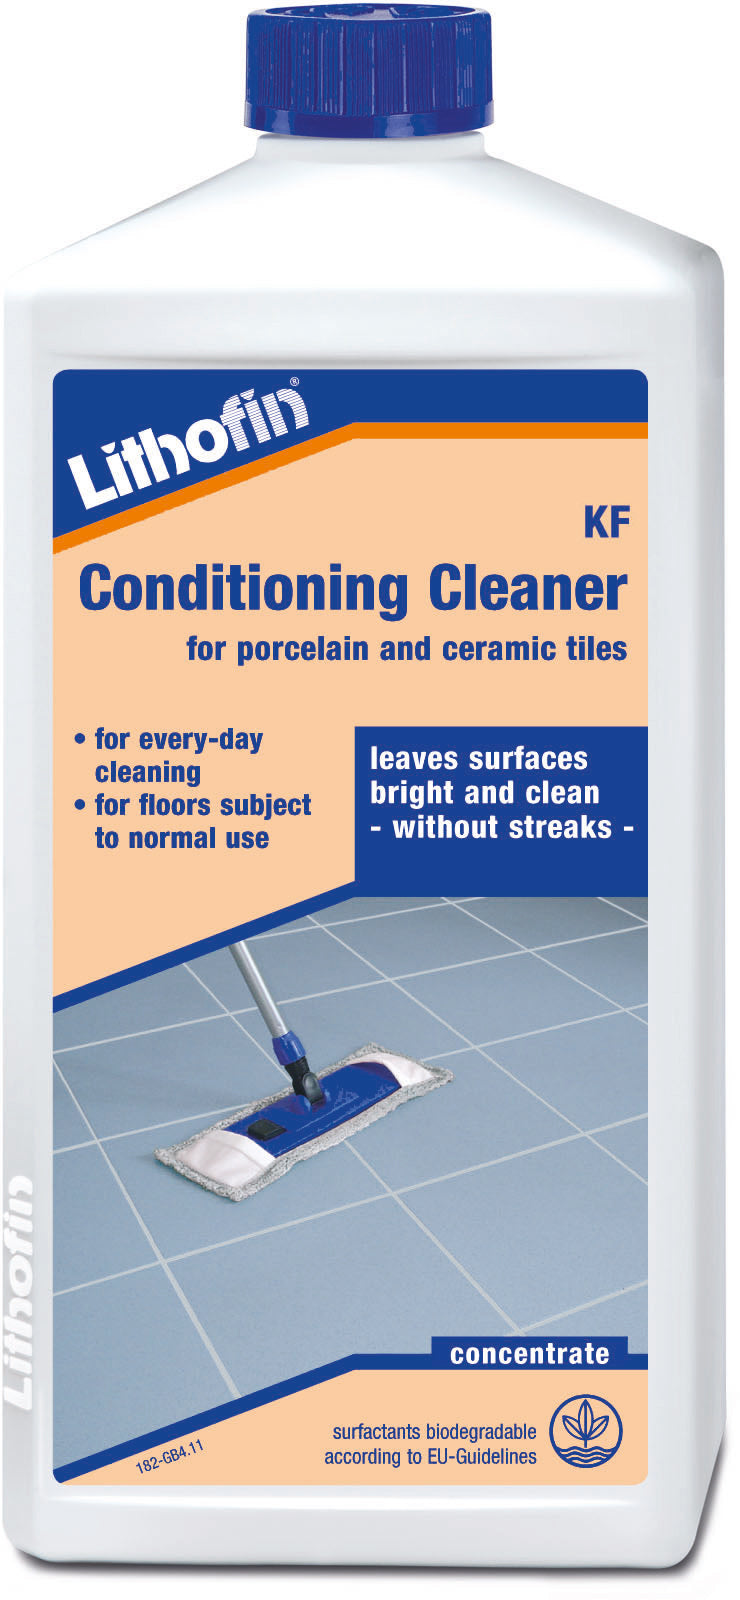 Lithofin Conditioning Cleaner for porcelain and ceramic tiles